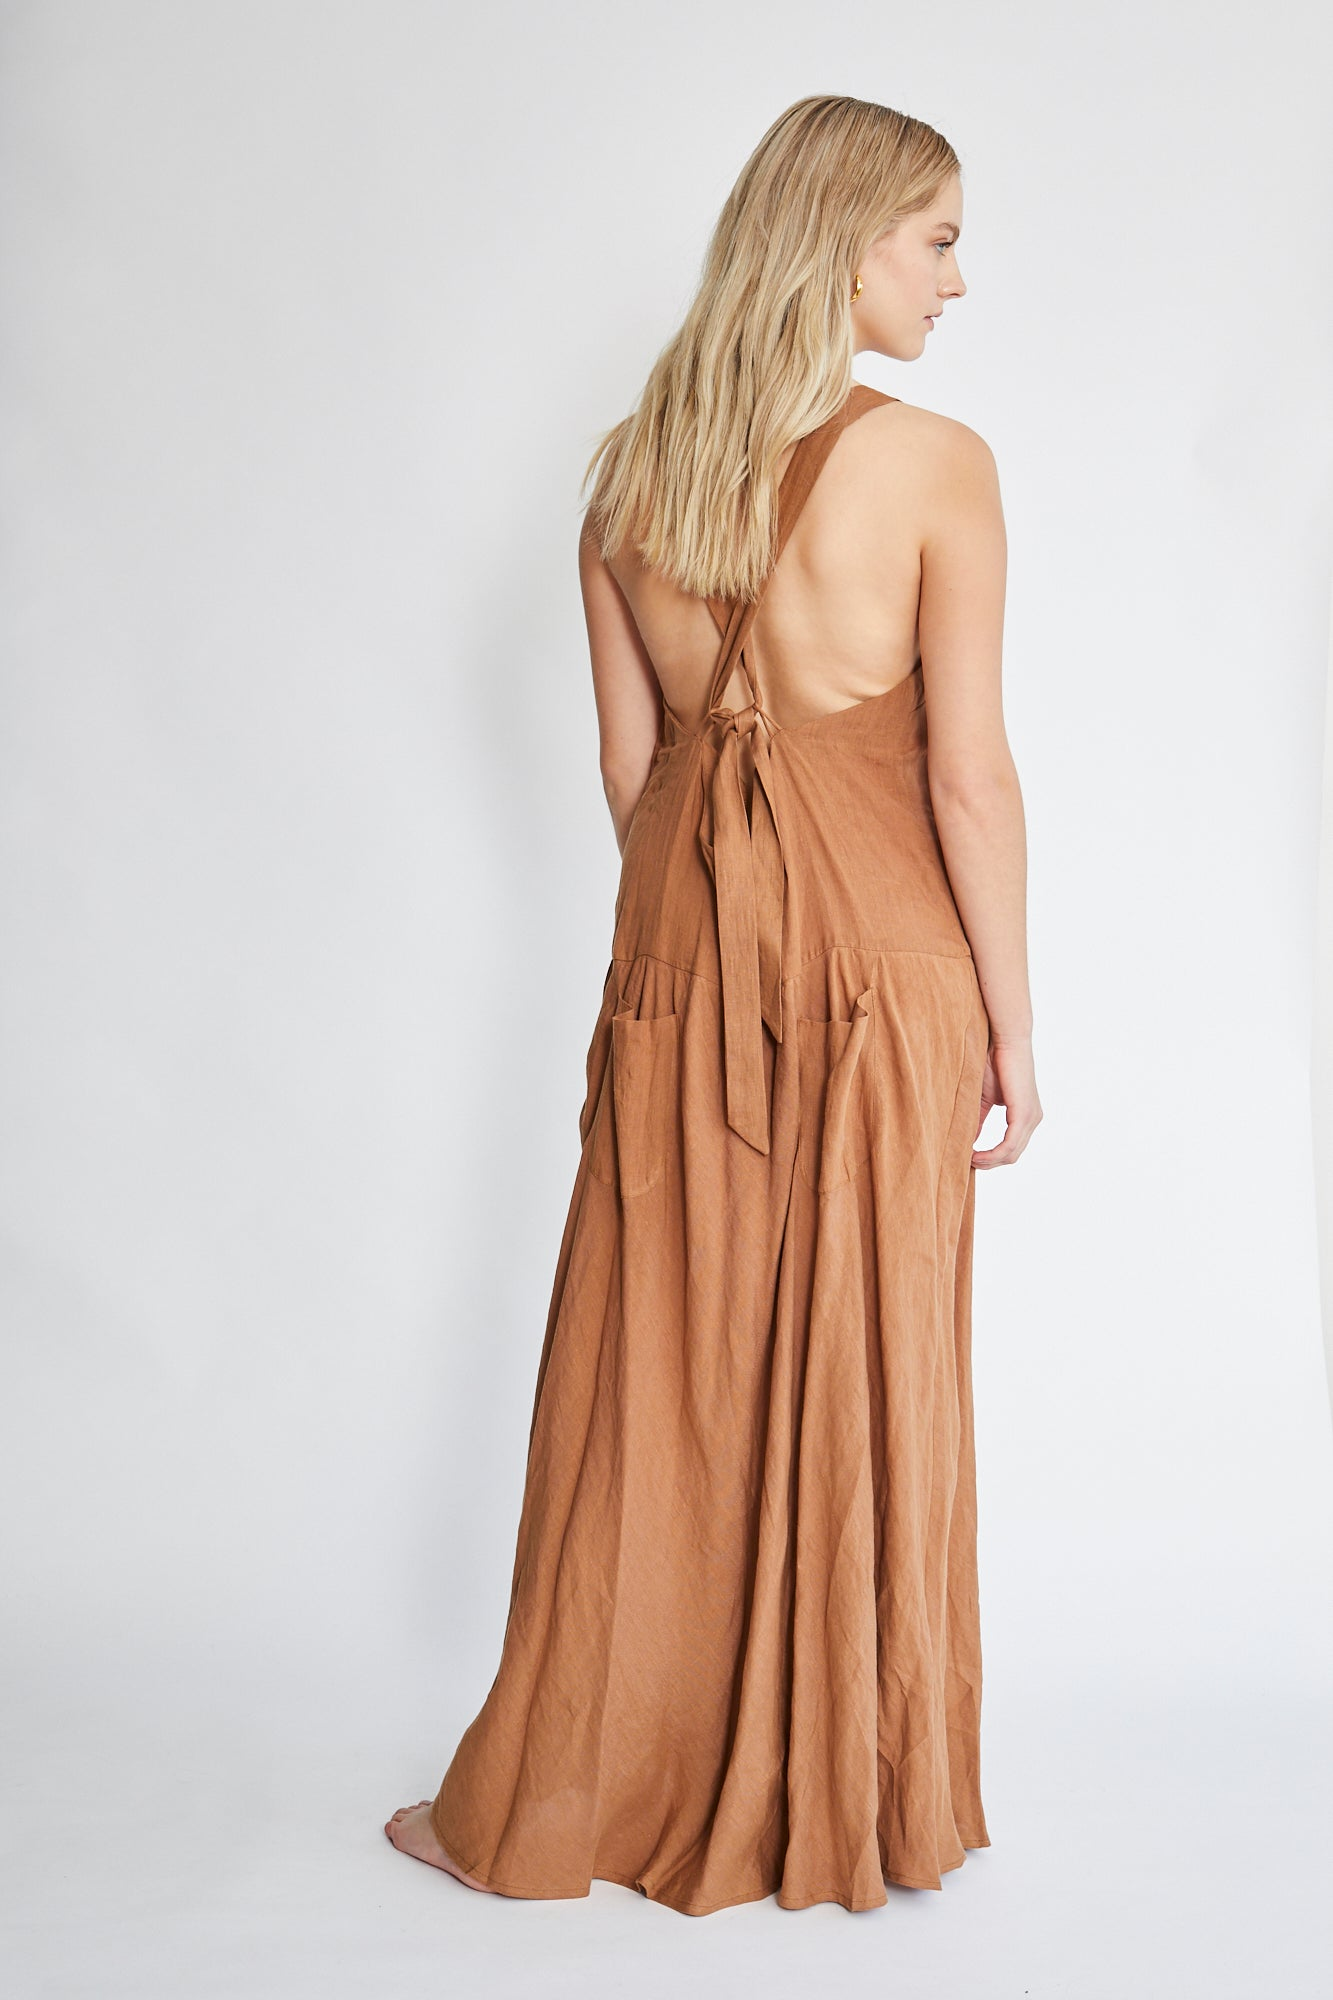 Matin Cross Back Linen Dress - Tan